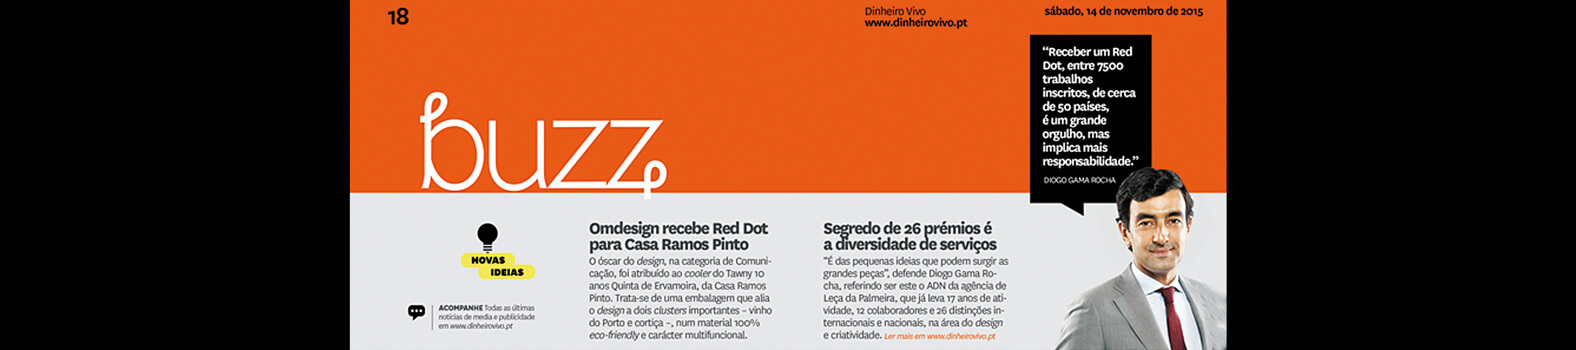 Omdesign traz Red Dot para Casa Ramos Pinto